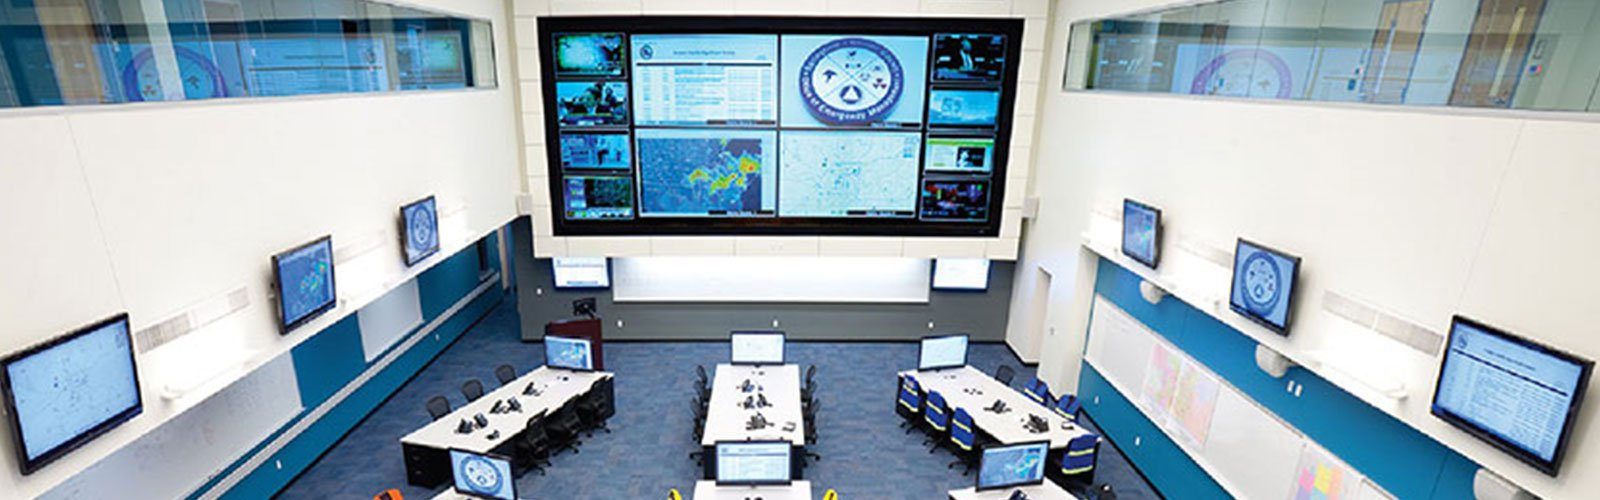 City emergency control room with an oversized video display at the front and several smaller video displays around the room (background)